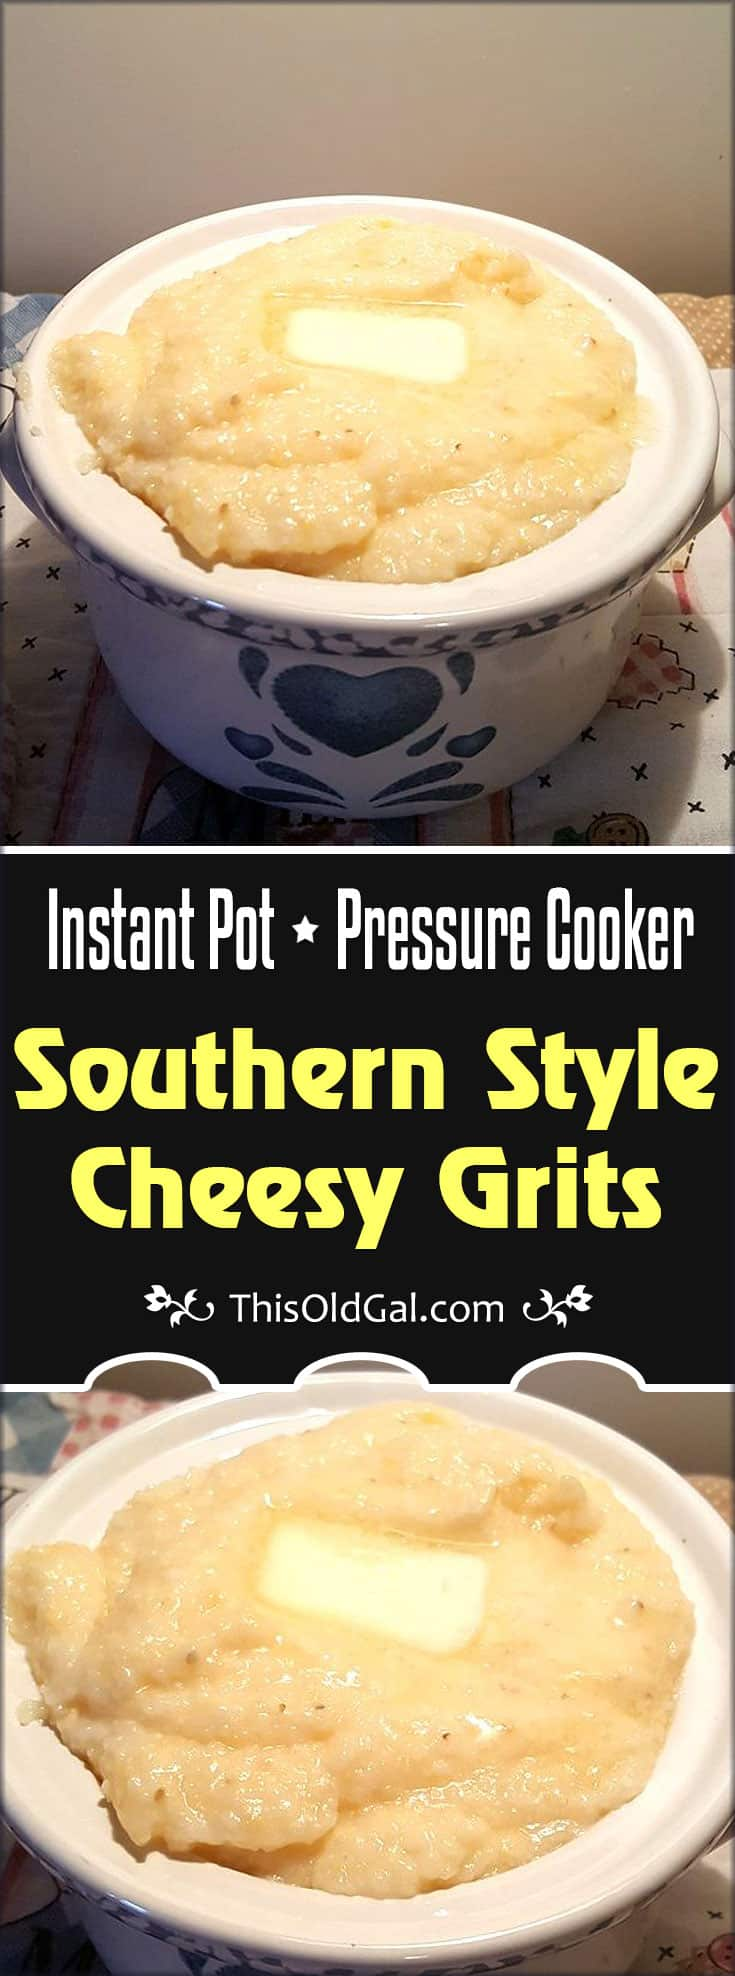 Pressure Cooker Southern Style Cheesy Grits